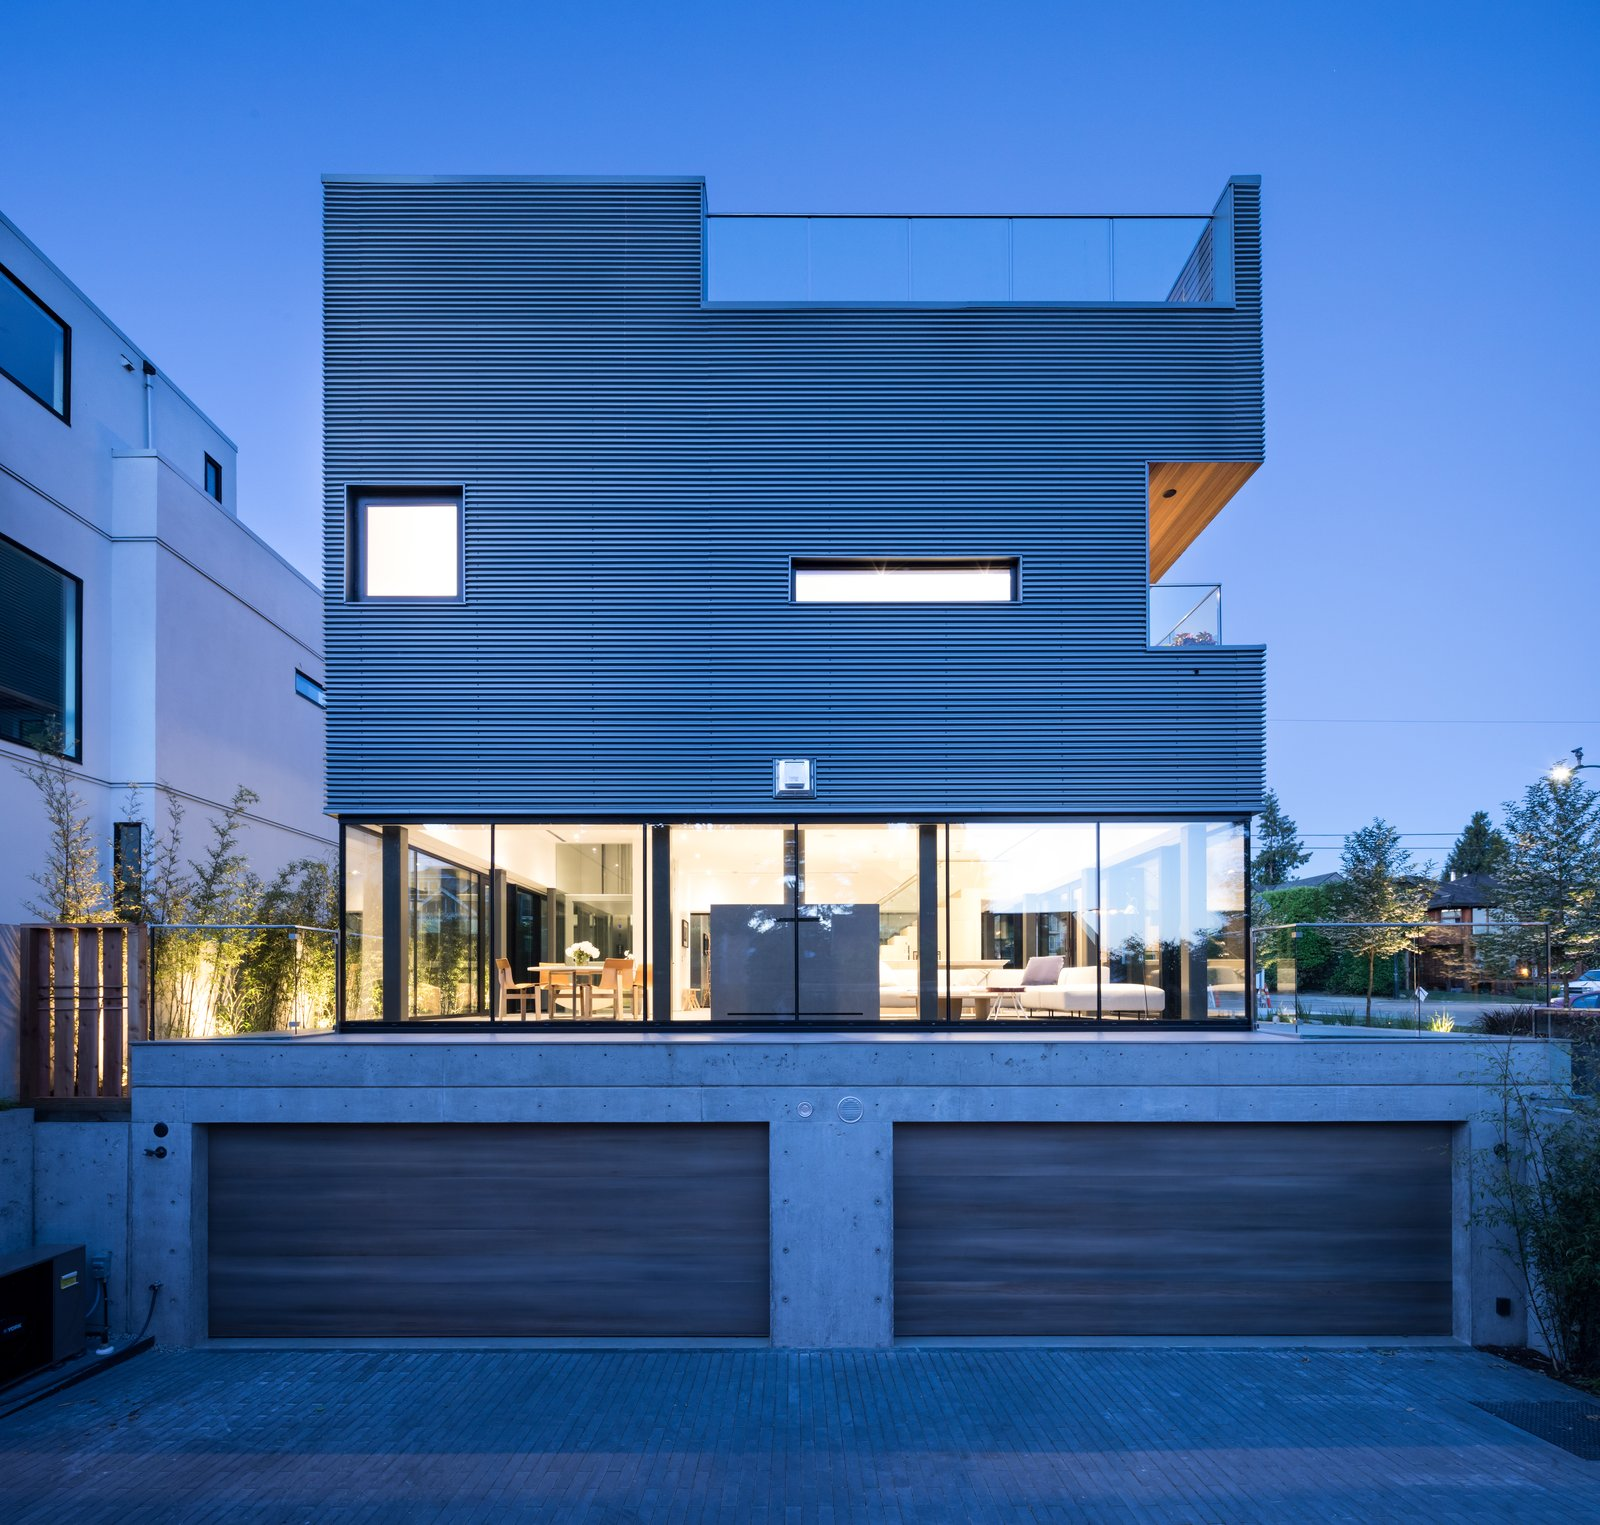 Photo 11 of 12 in Wrapped in Galvanized Steel, 'Cube House' in Vancouver Asks $12.8M